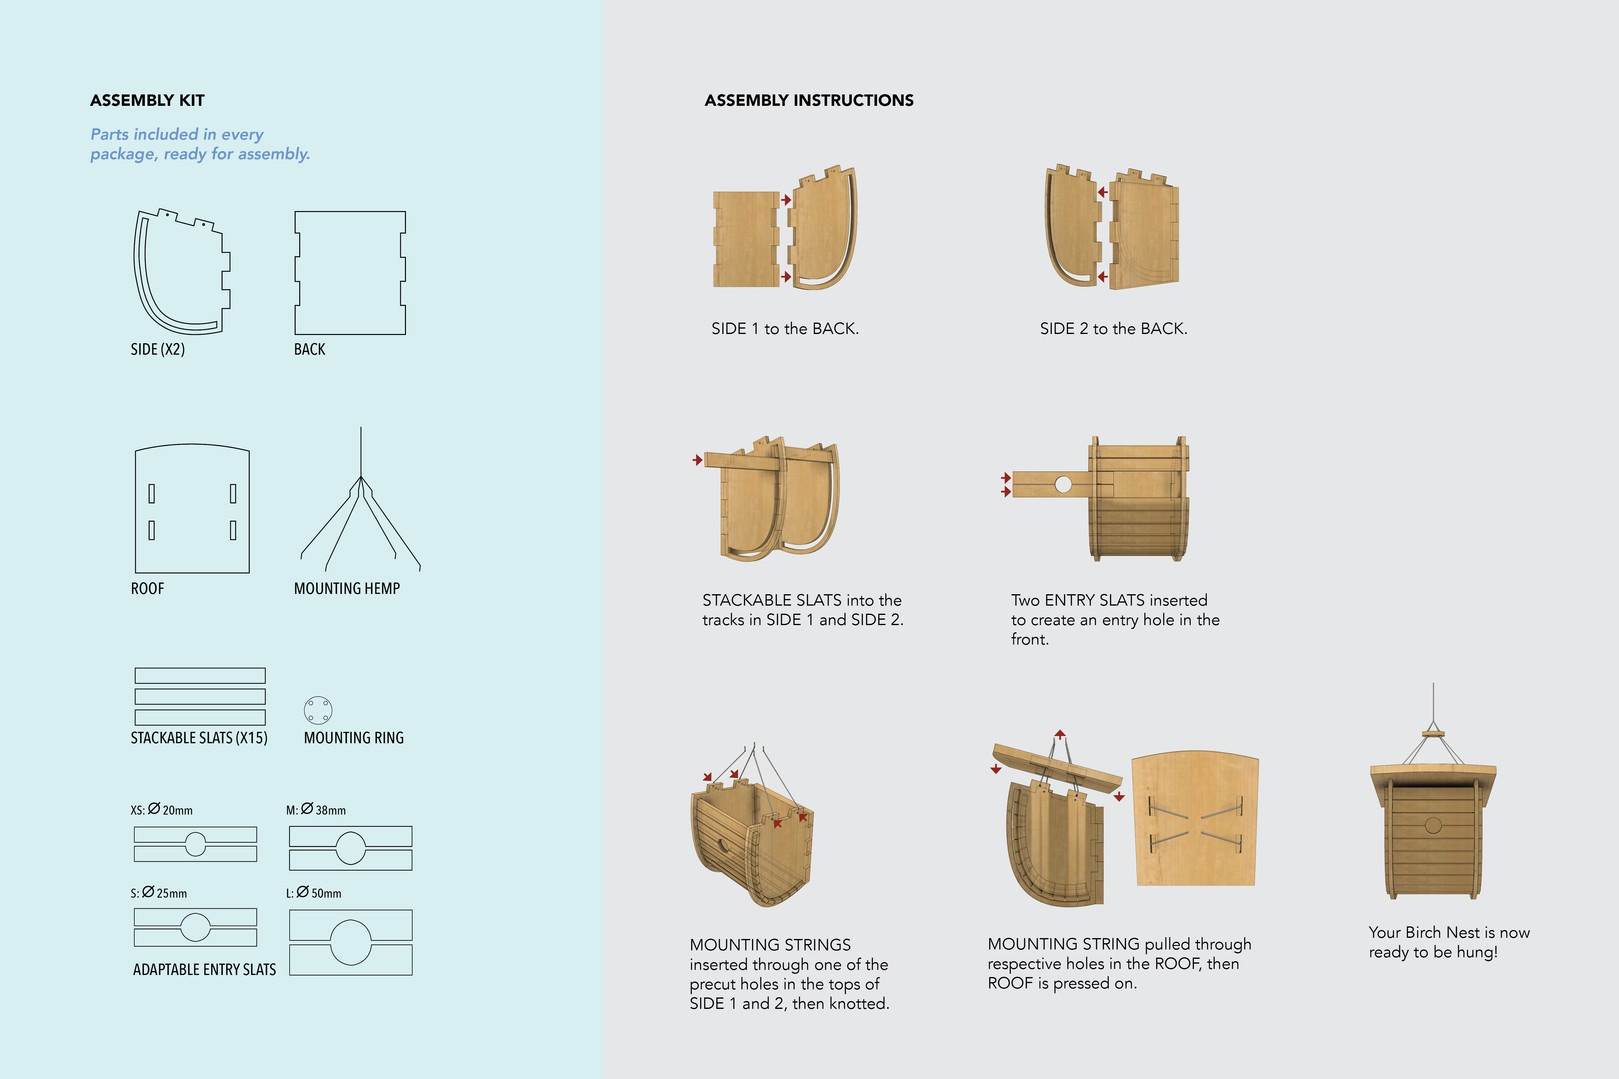 Kit of parts and easy to follow assembly